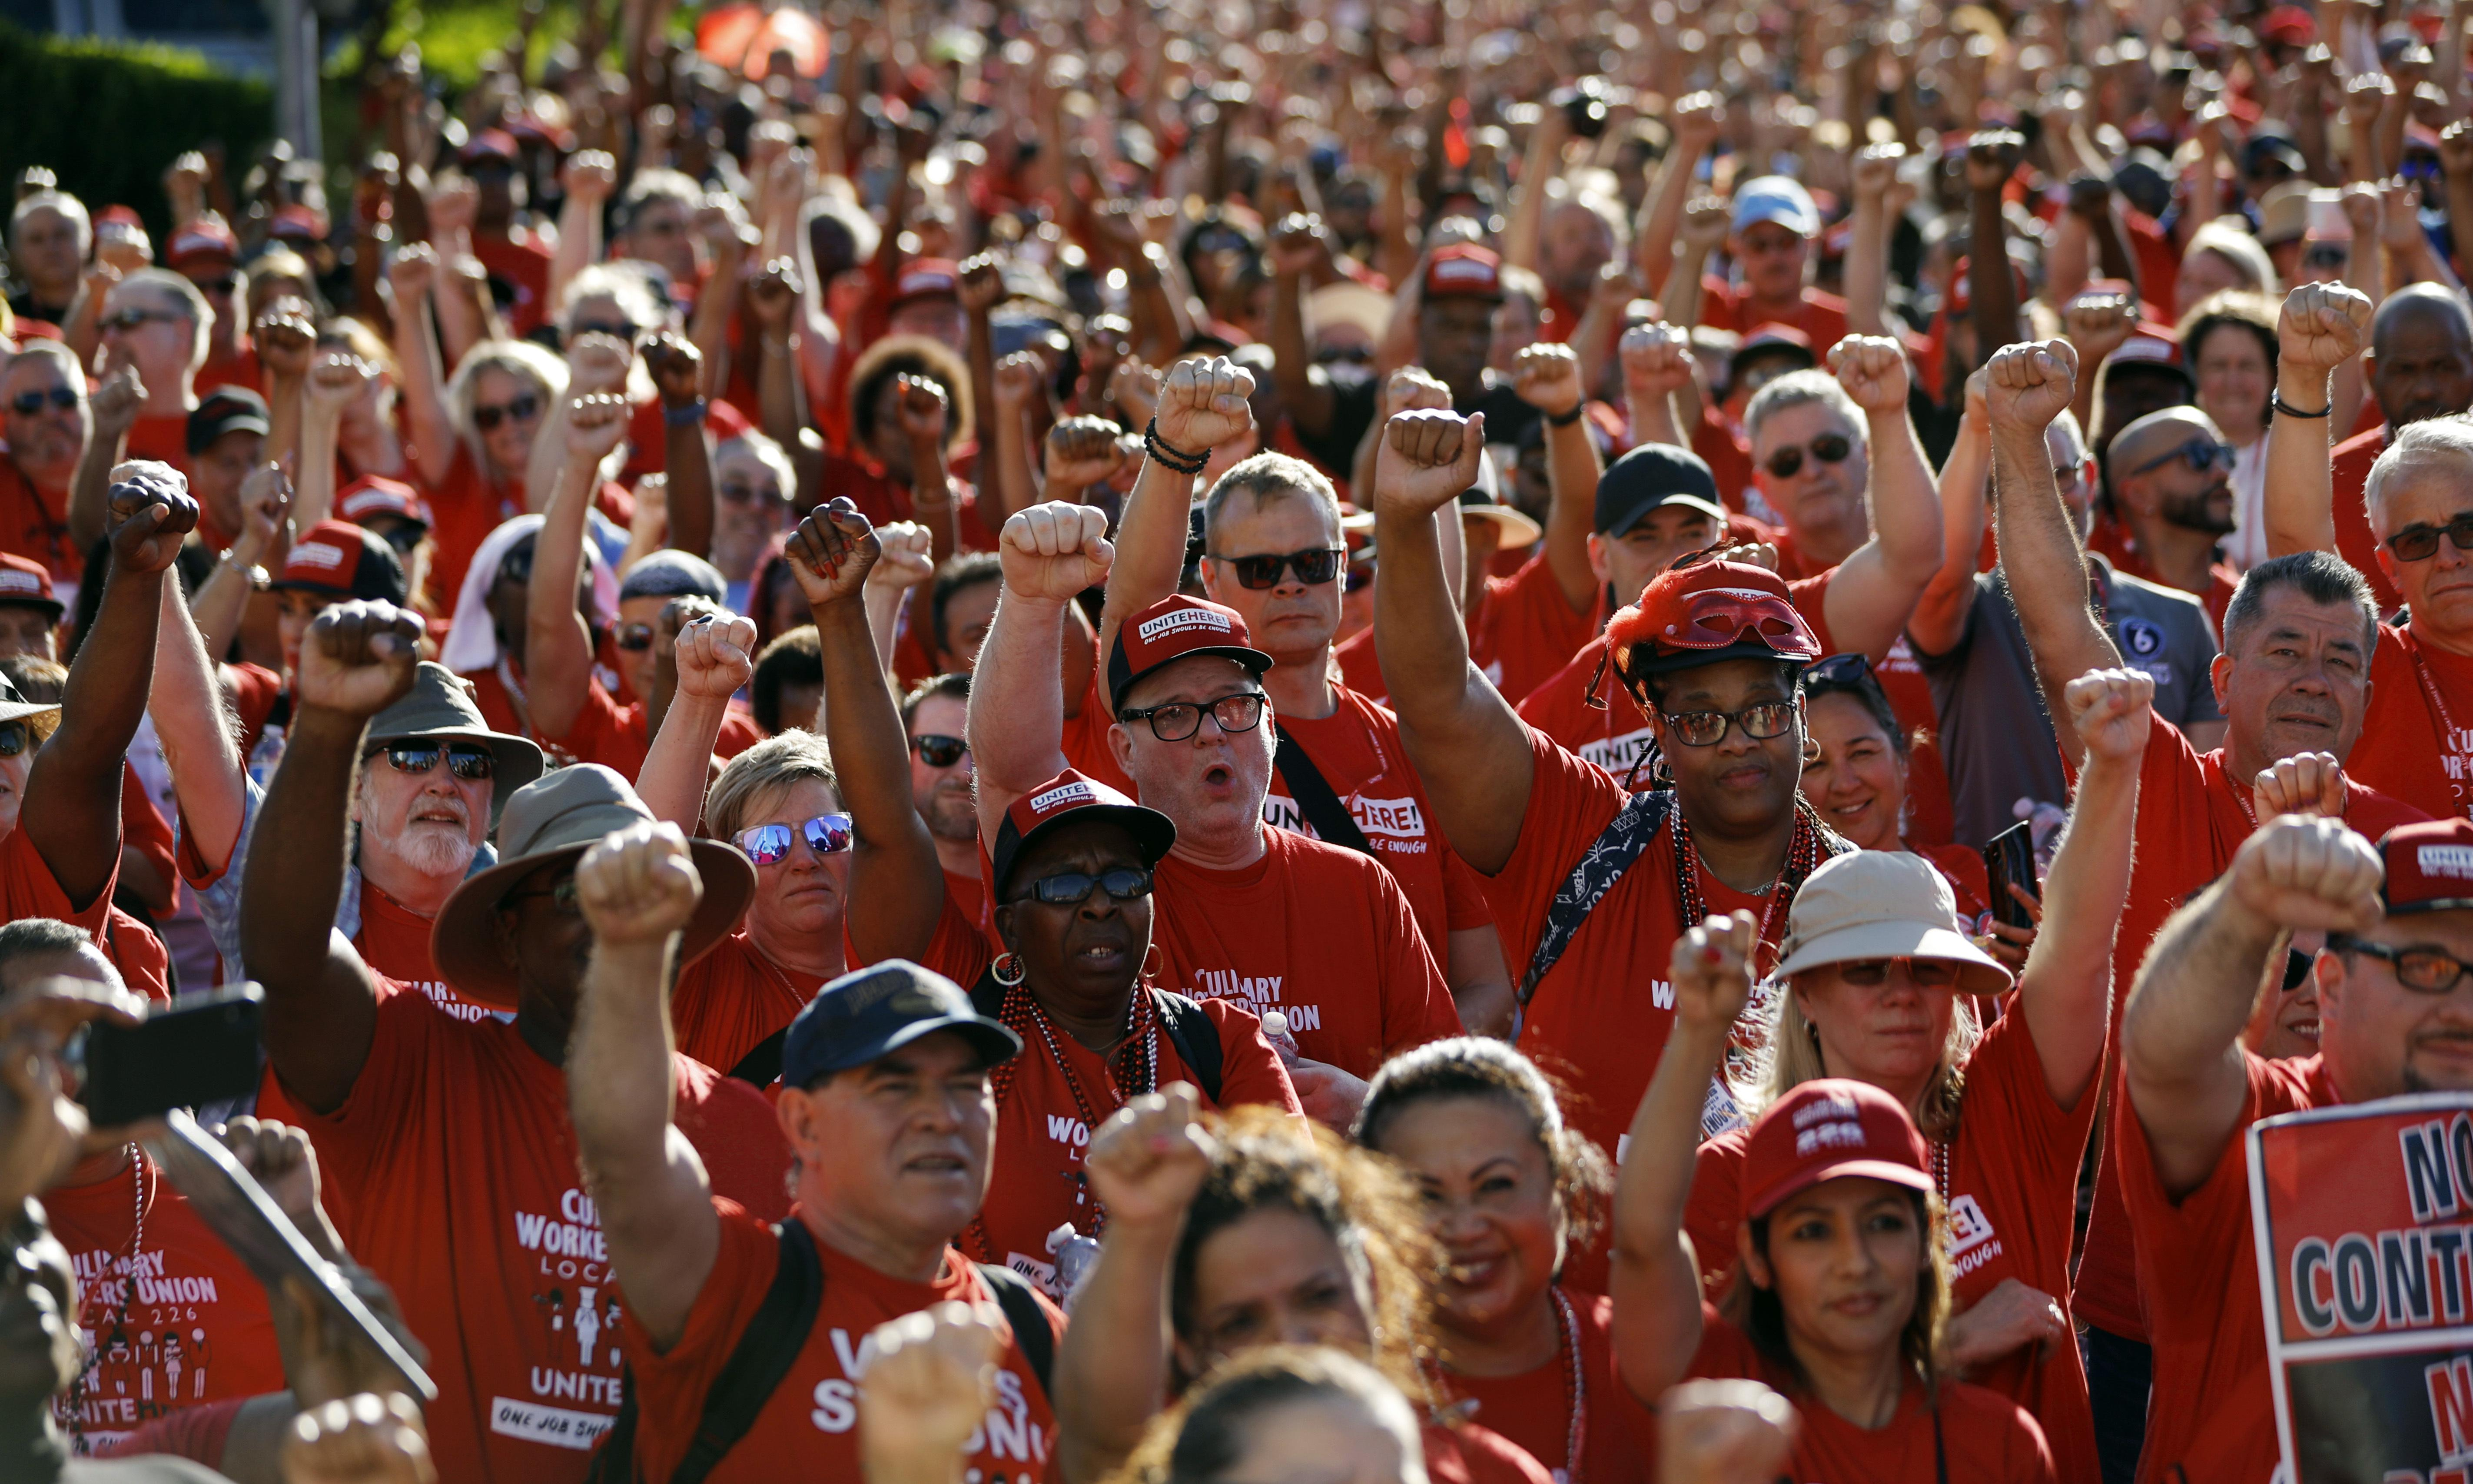 Nevada casino workers fight an uphill battle to get – and keep – their unions